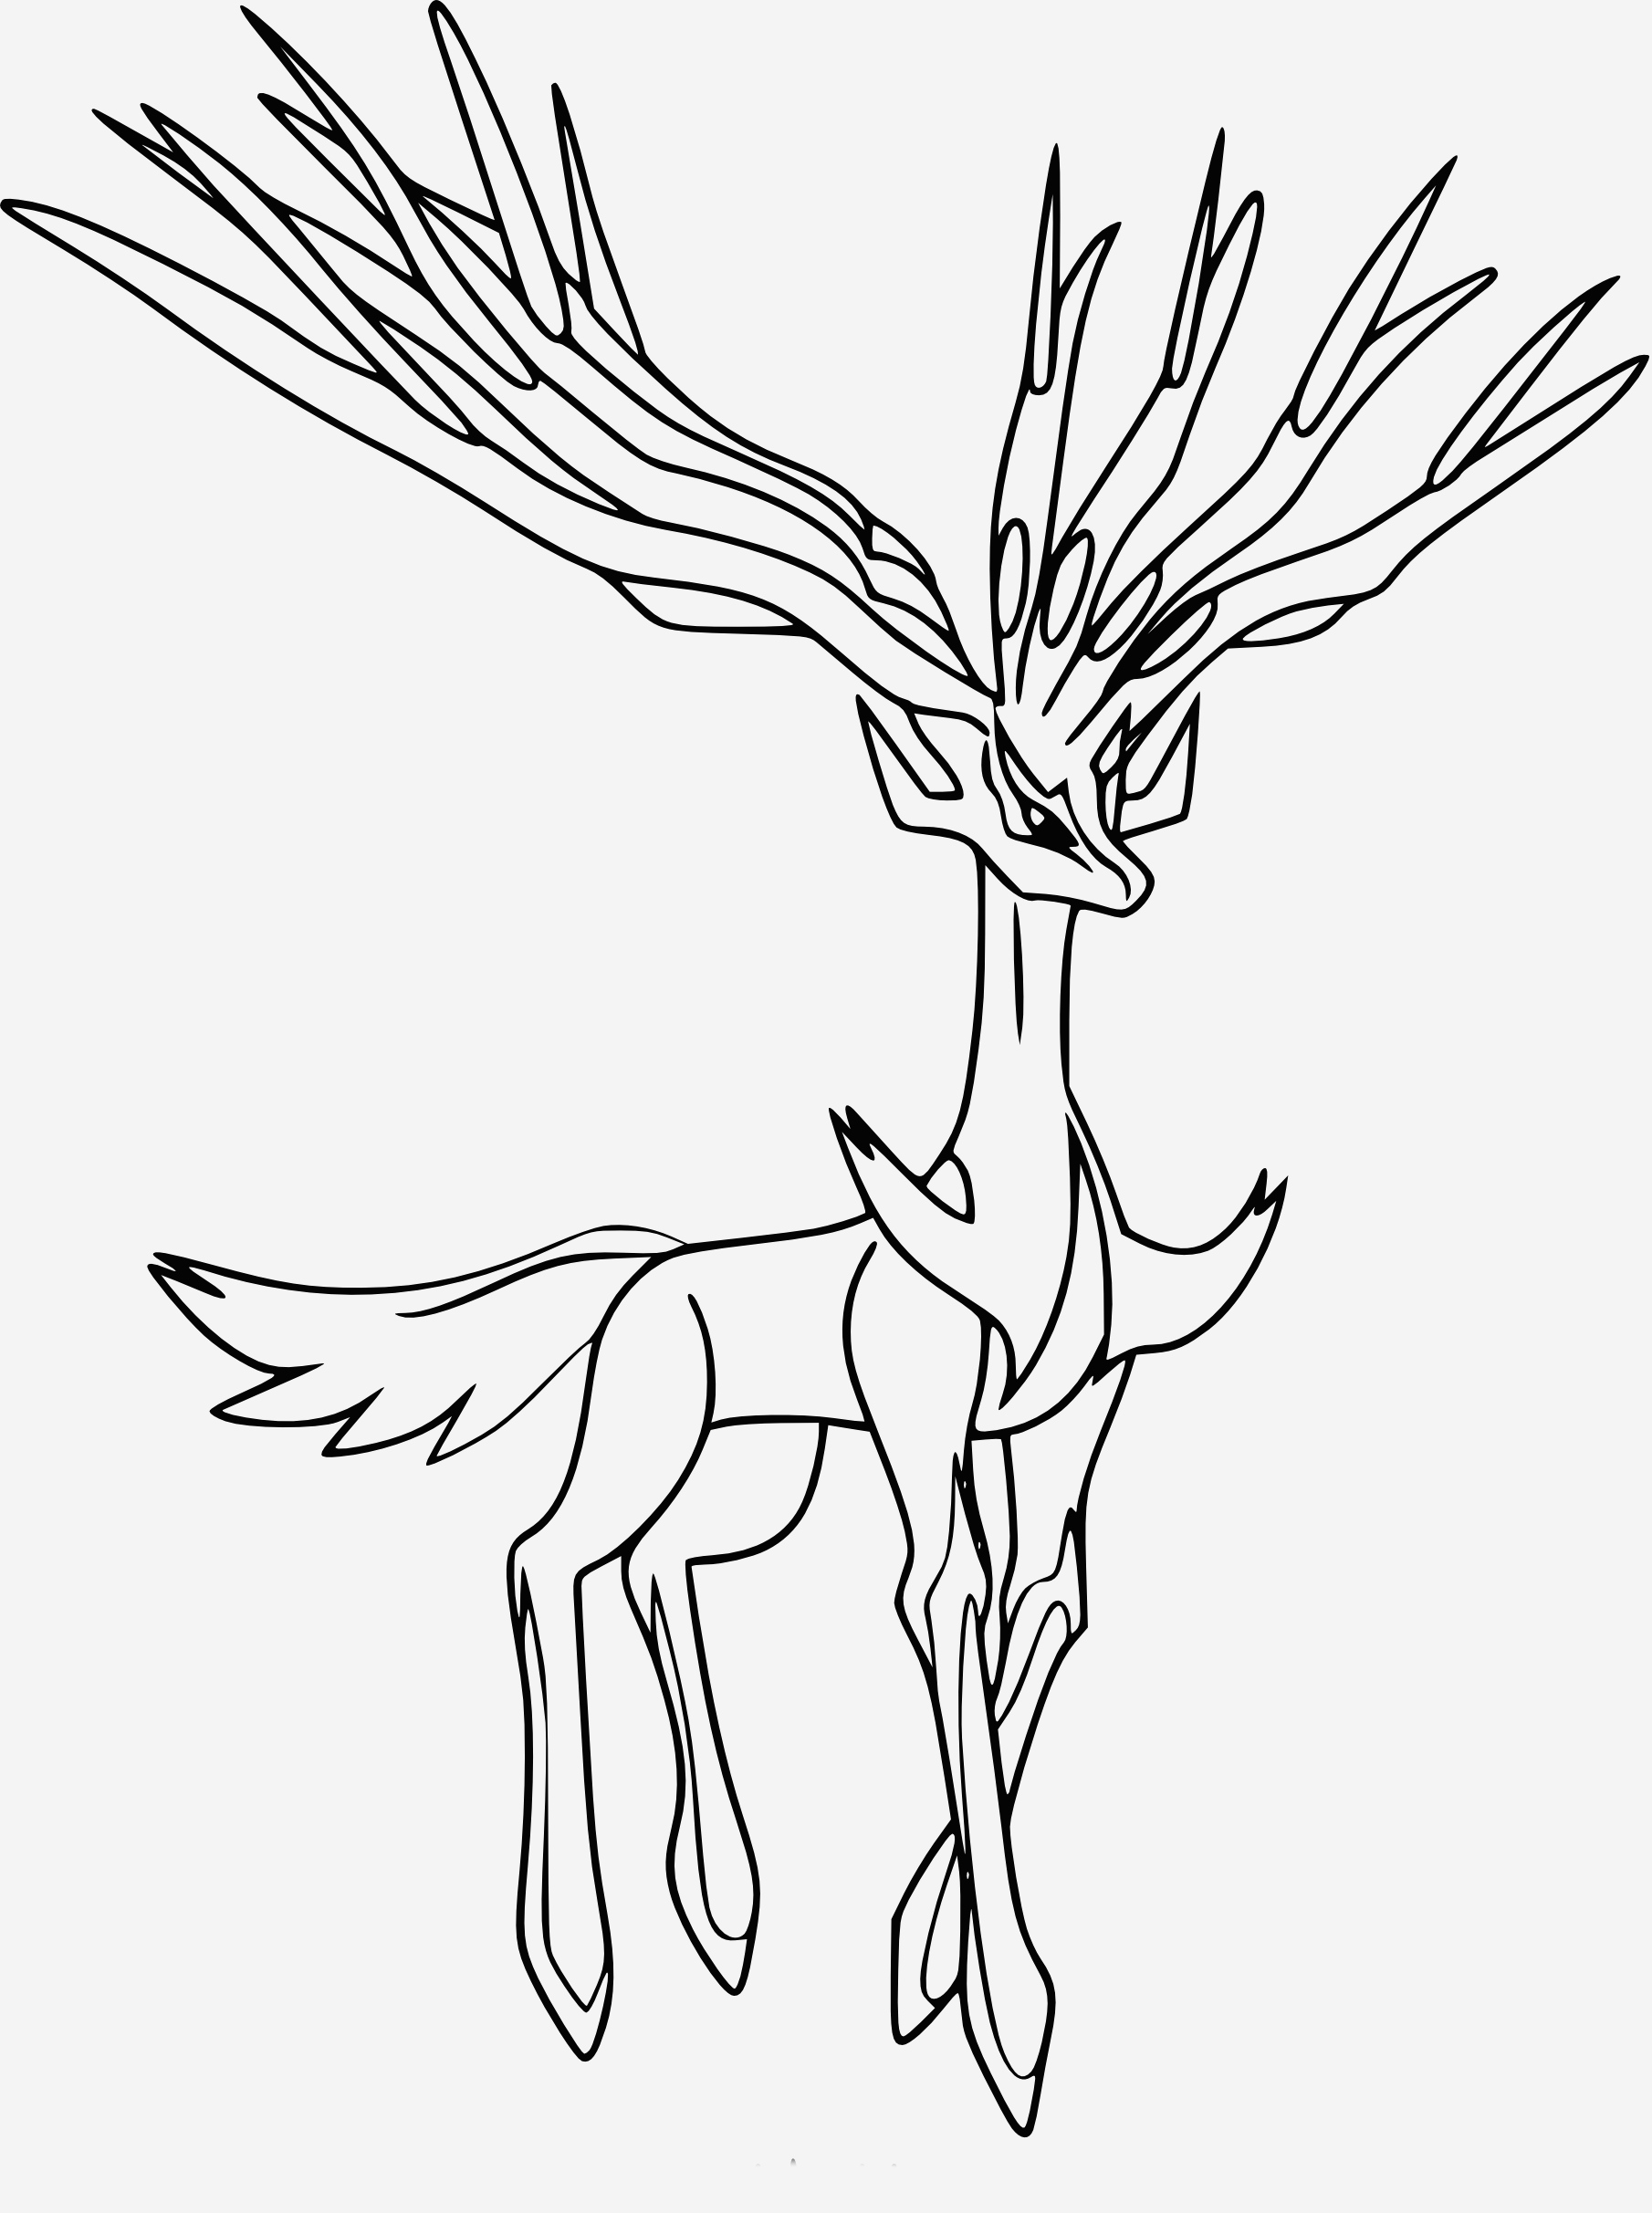 Coloriage à Imprimer Pokemon Legendaire Lovely Coloriage Xerneas Pokemon   Imprimer Of Coloriage à Imprimer Pokemon Legendaire